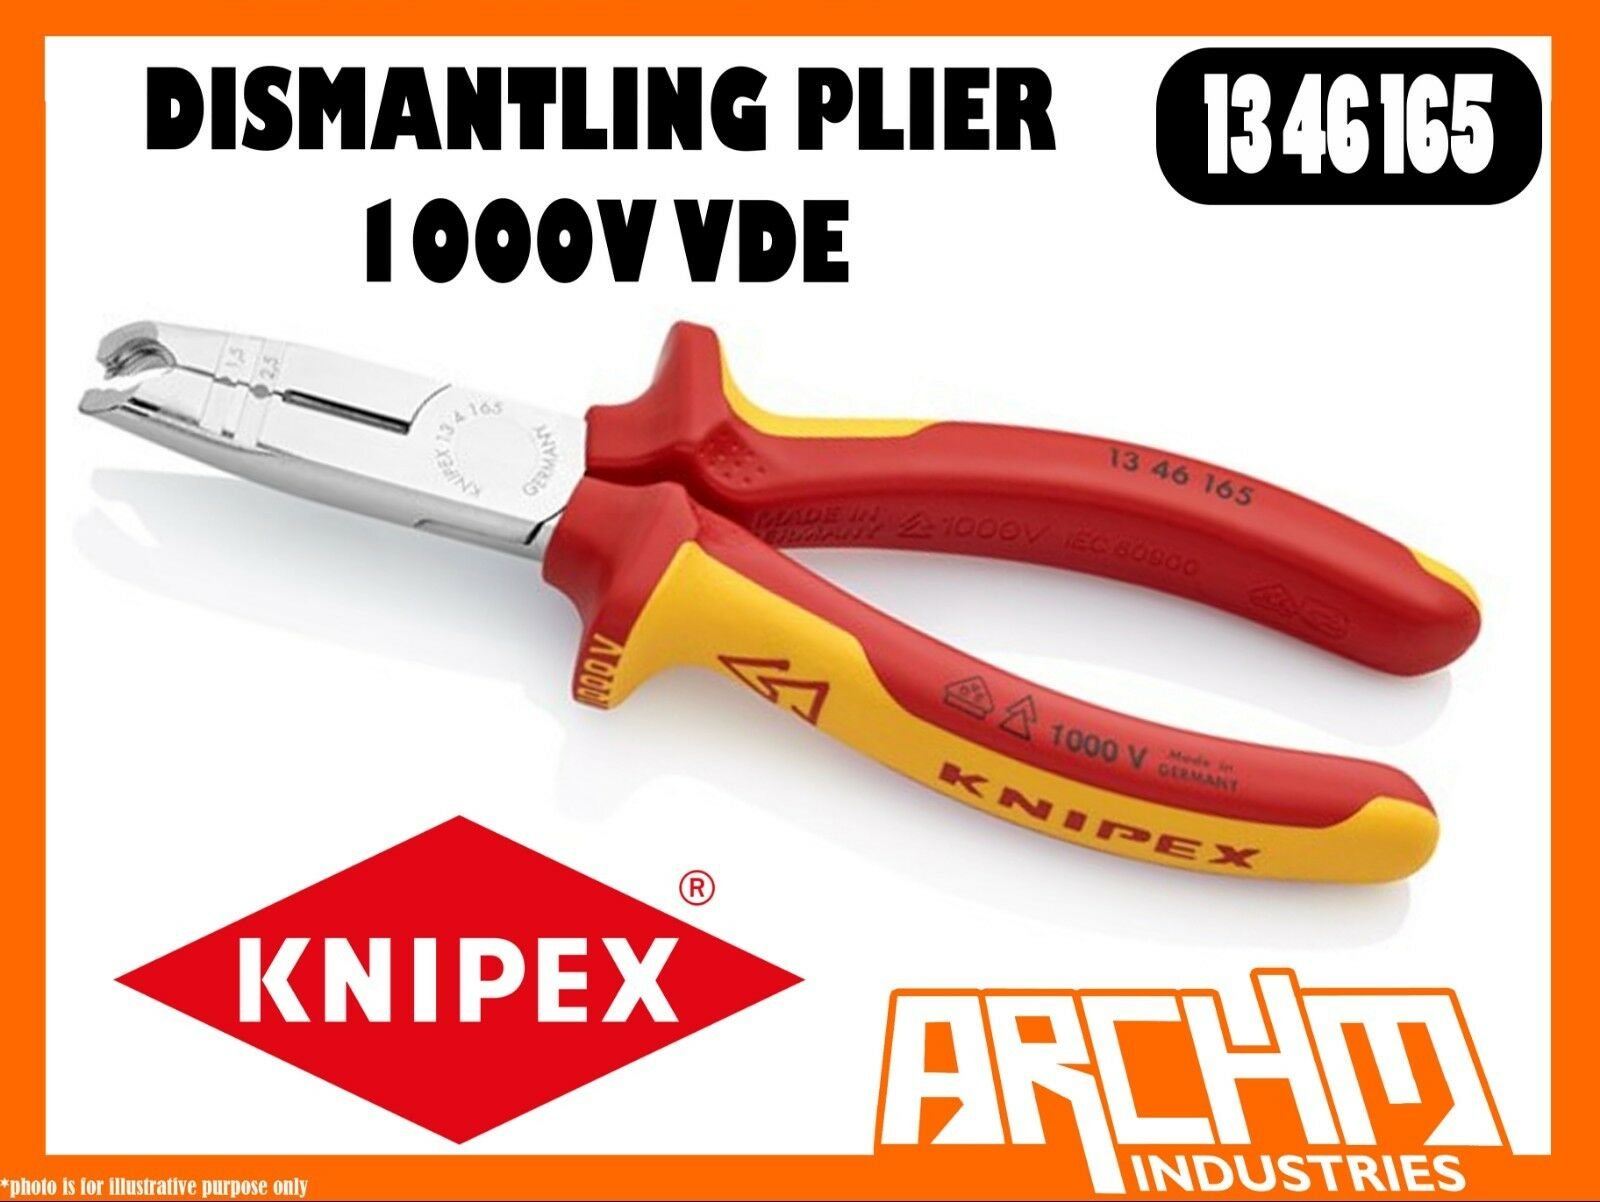 KNIPEX 1346165 -  DISMANTLING PLIE 1000V VDE 165MM CIRCULAR CUTTING EDGE CABLES